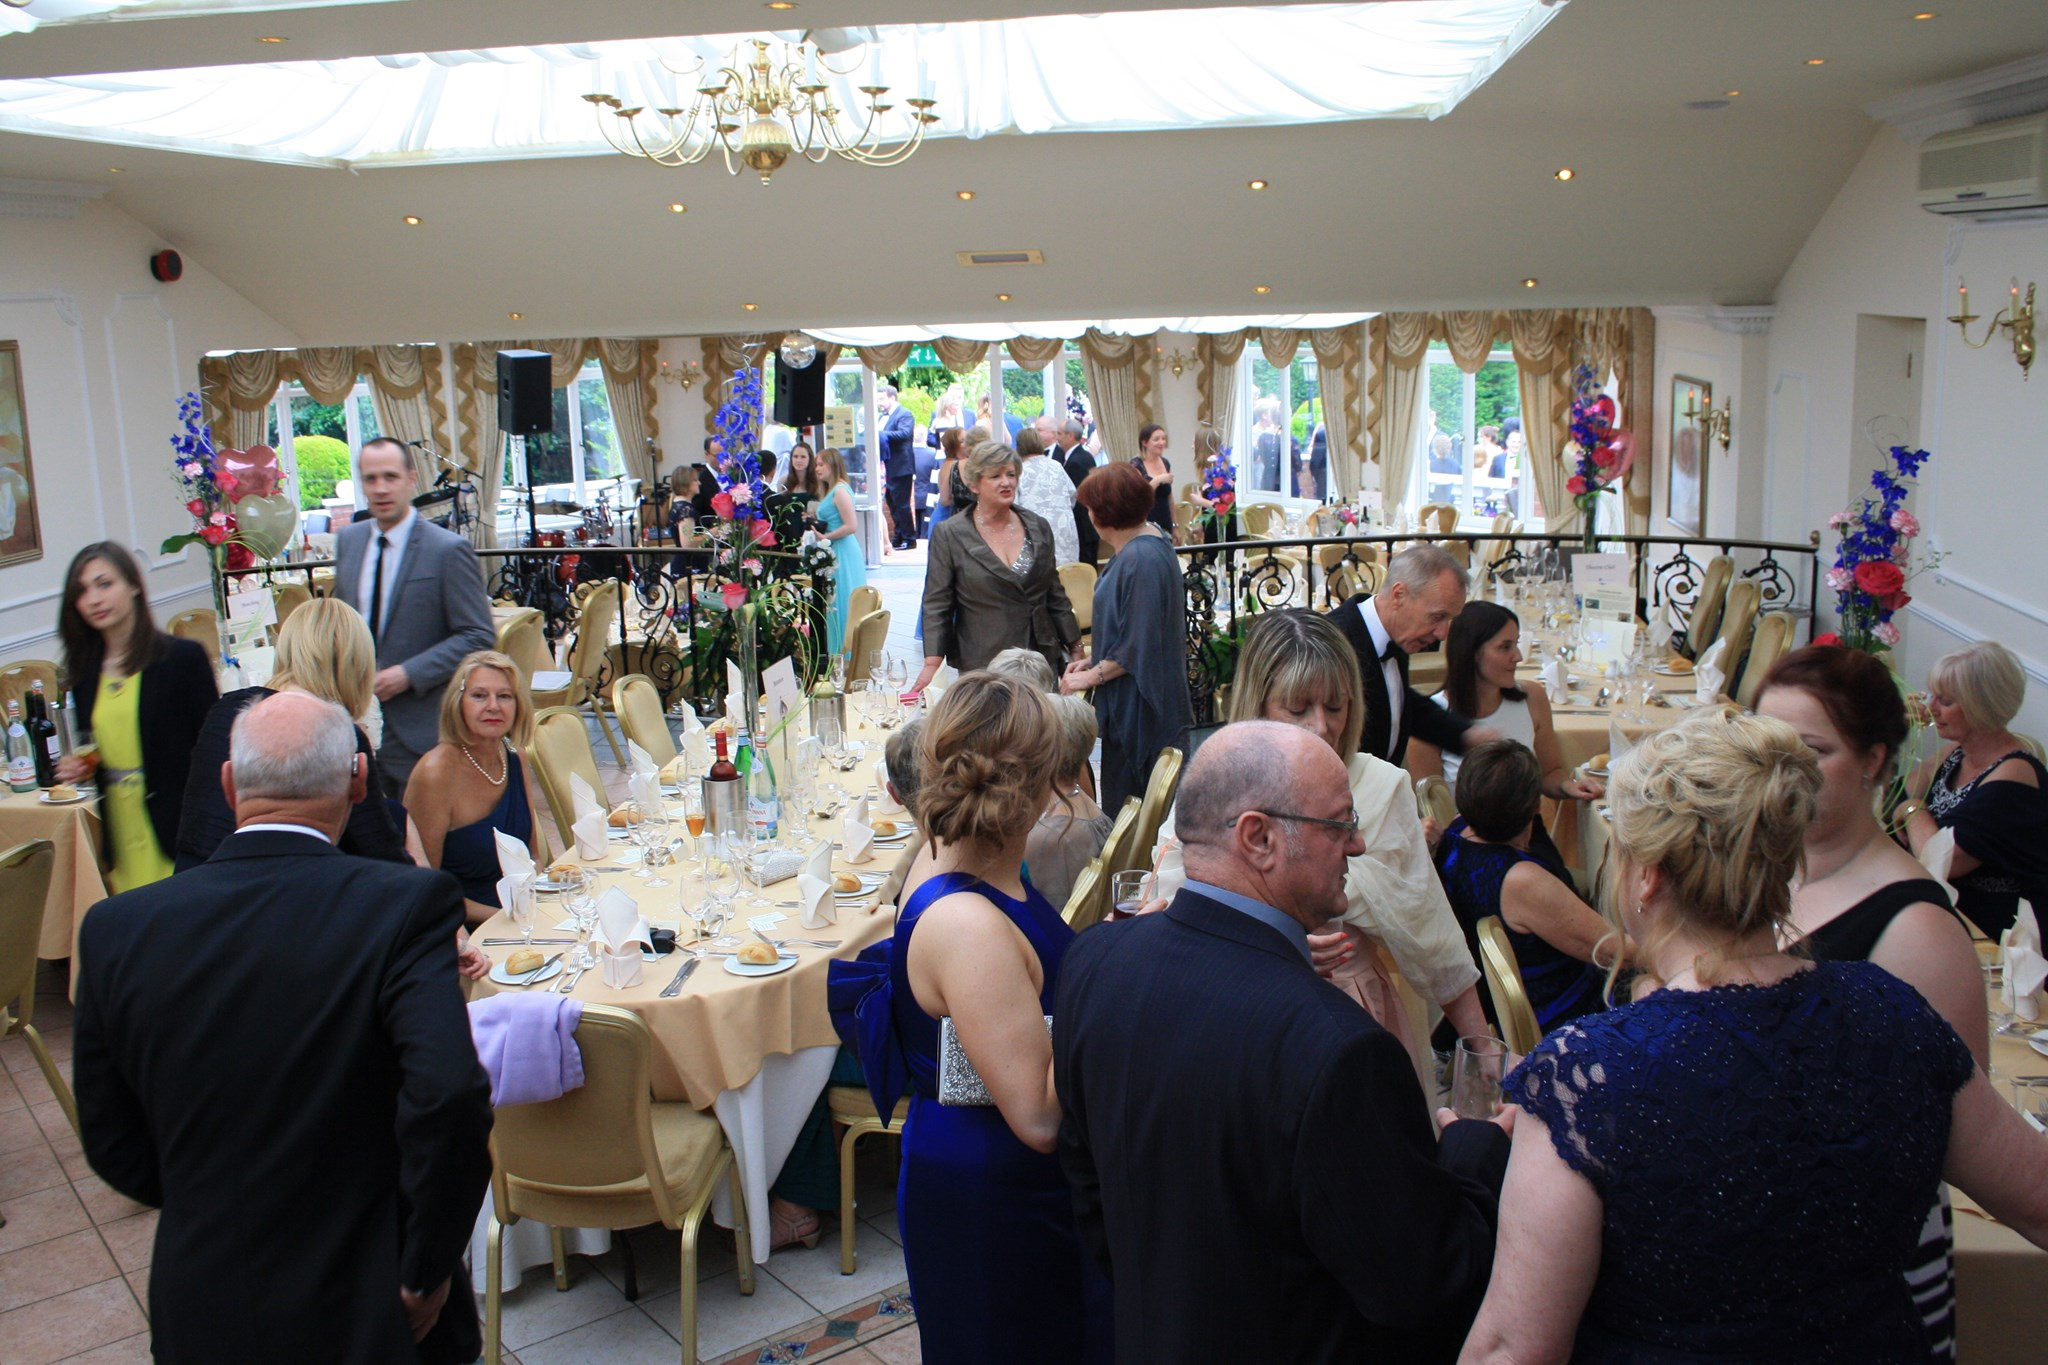 Gathering before The Ball